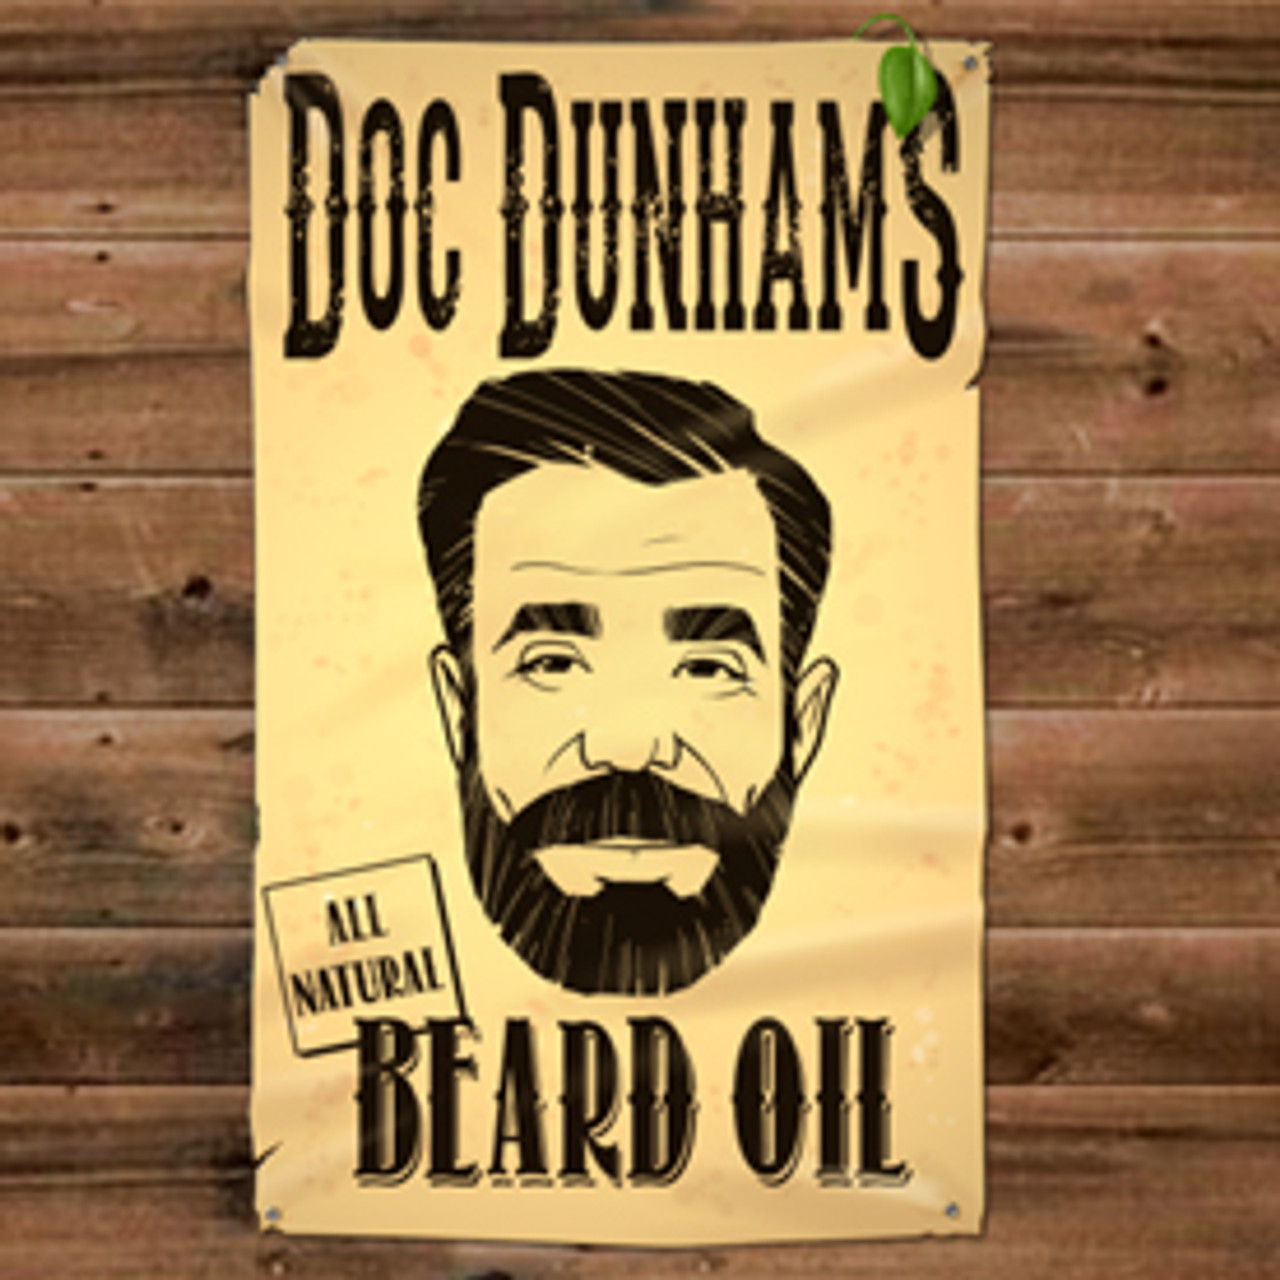 Doc Dunham's Beard Oil